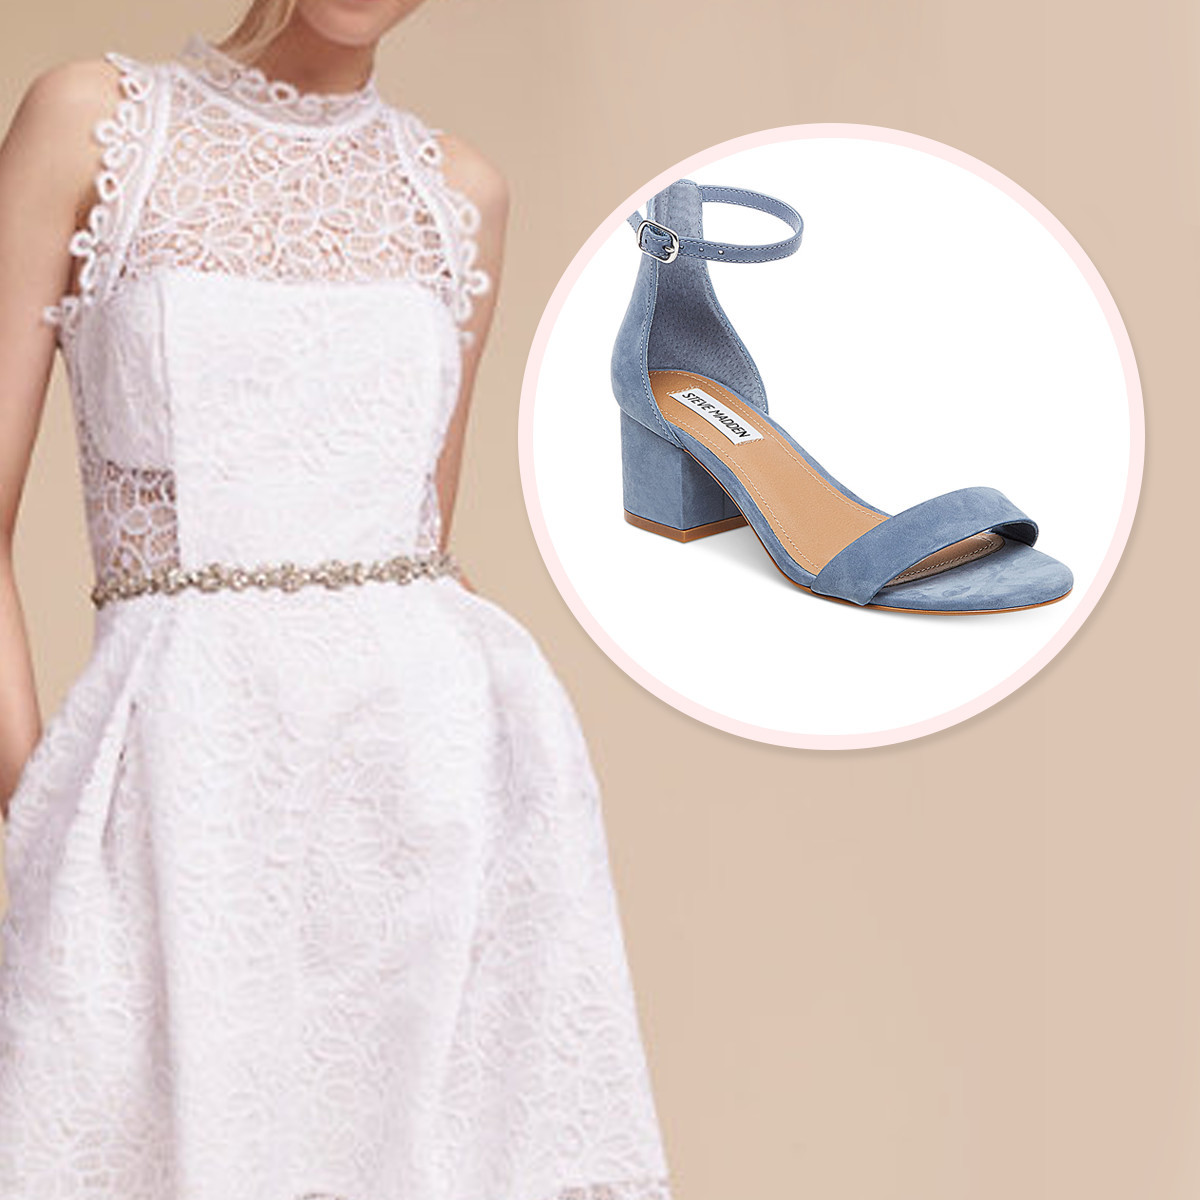 Light blue high heels next to a white lacy bridal dress photo